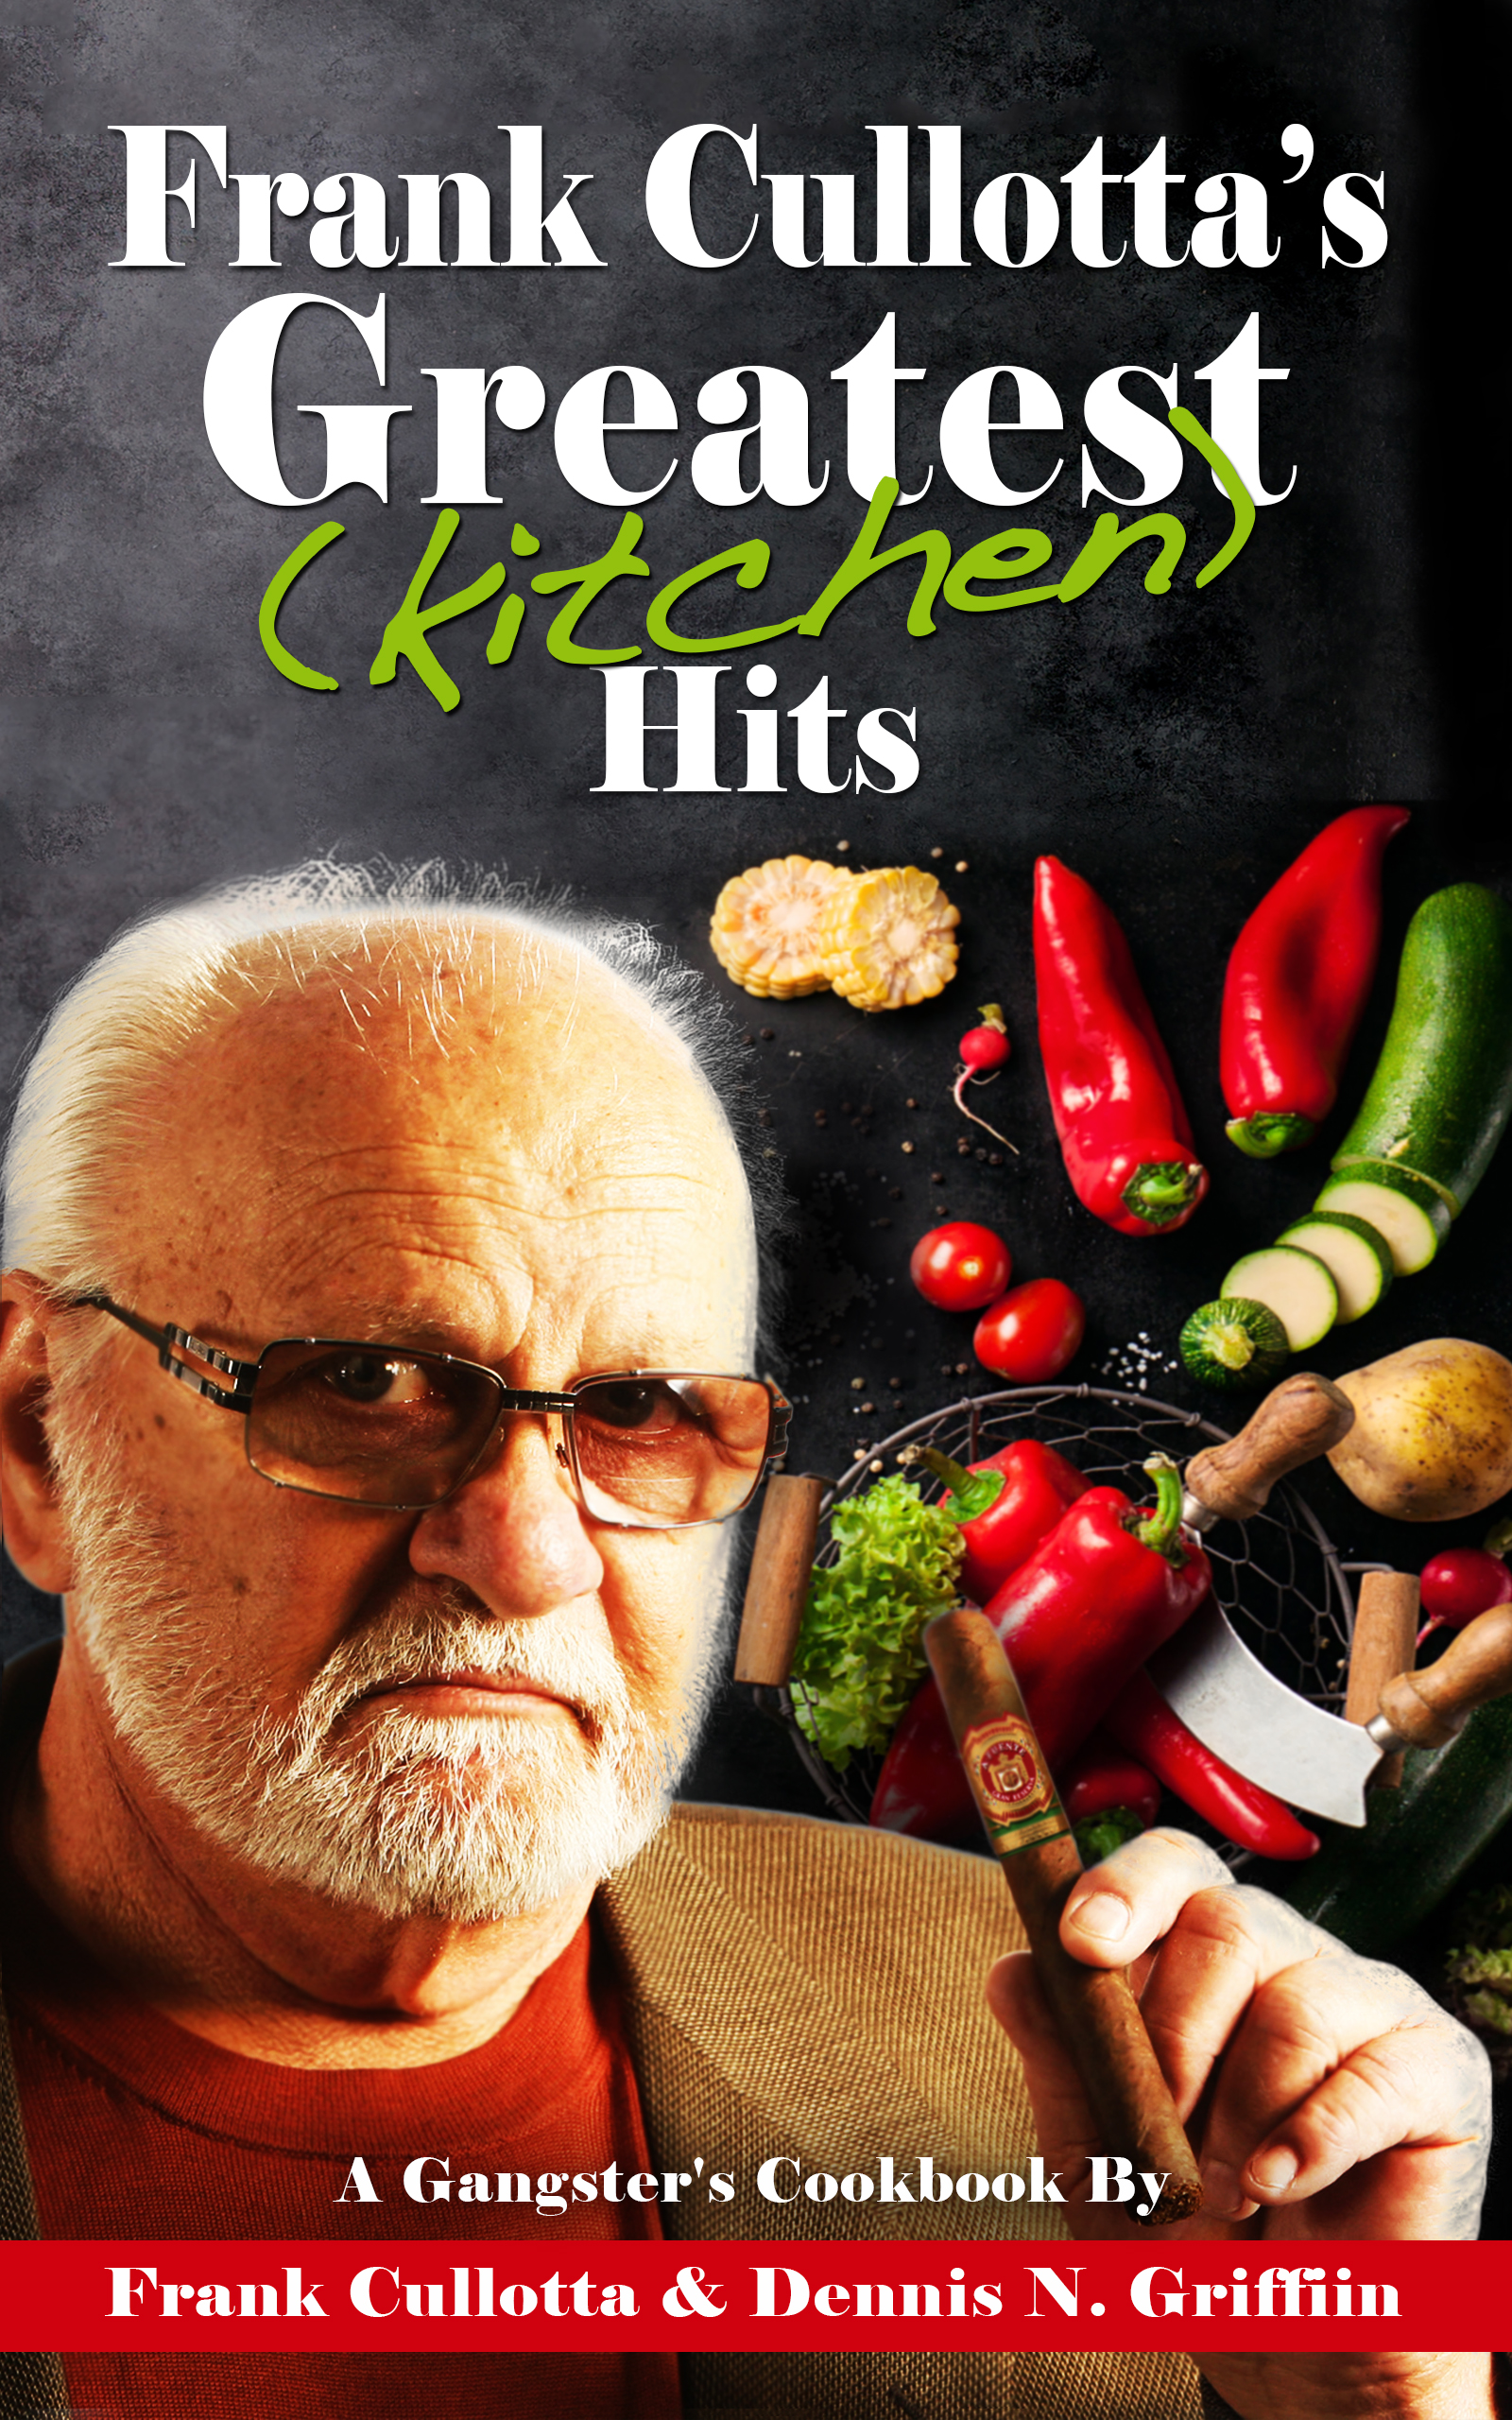 Frank Cullotta, Late Chicago and Vegas Mobster, Publishes Posthumous Gangster's Cookbook